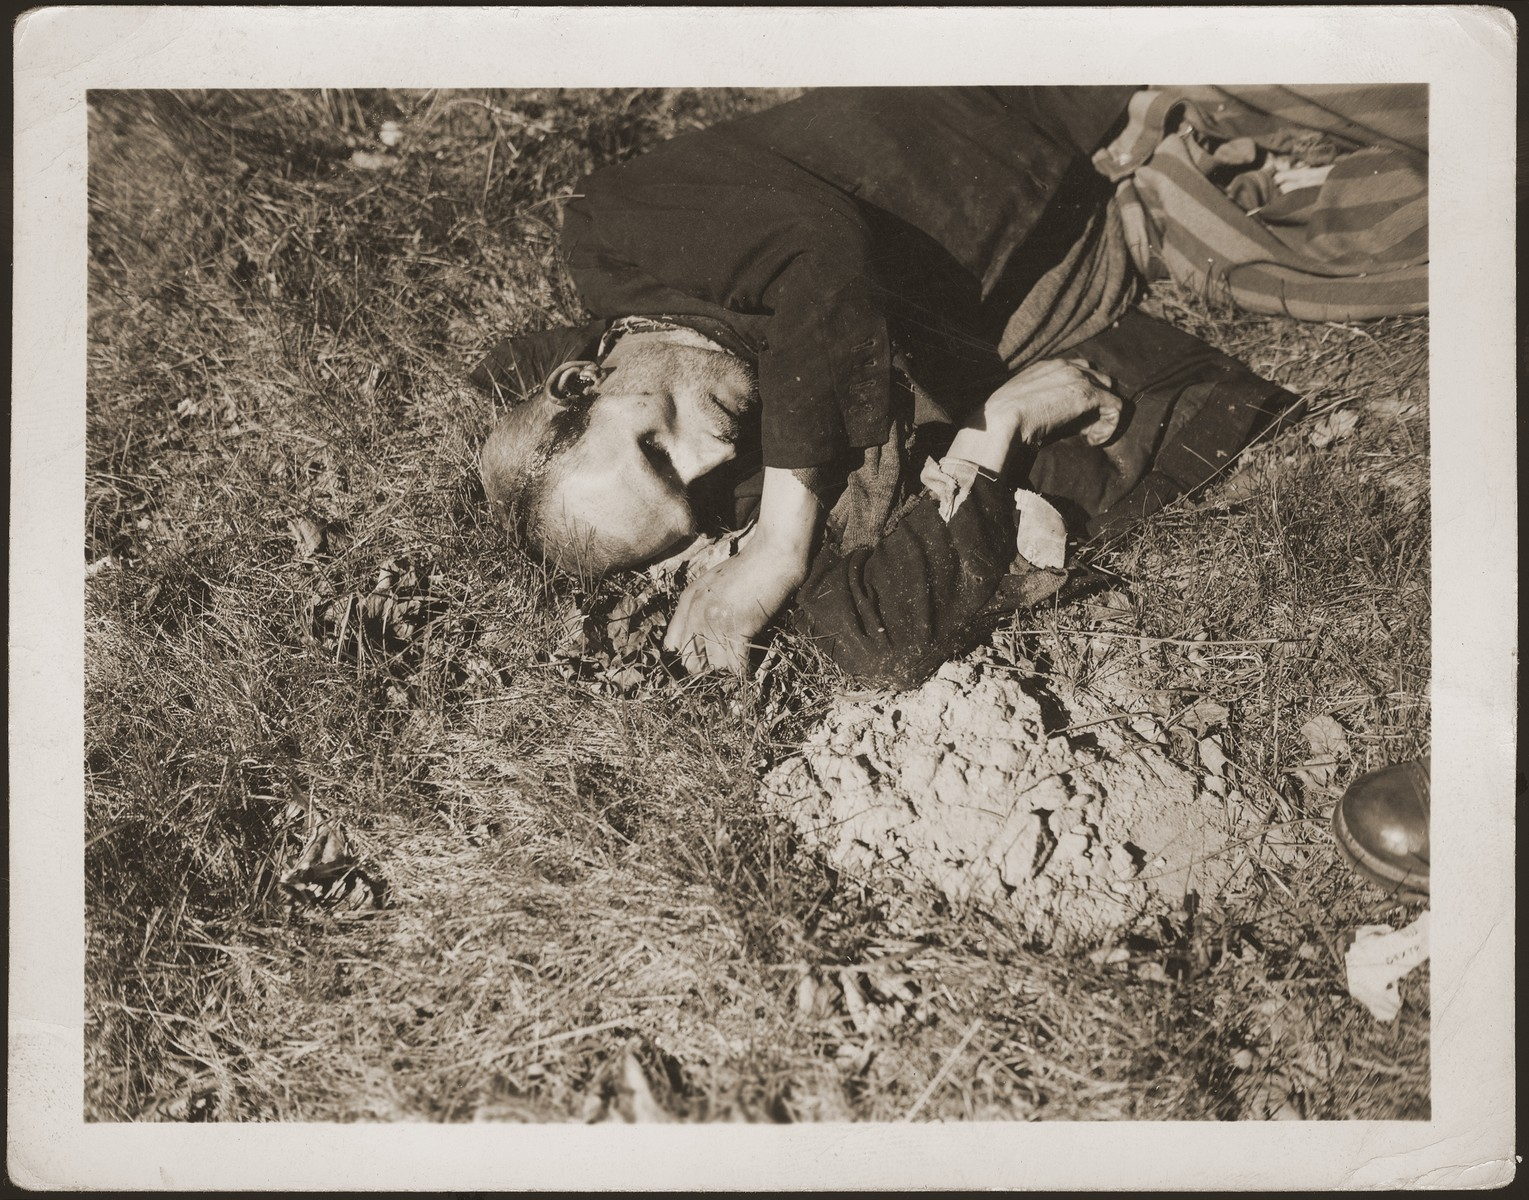 The body of a prisoner shot on the road near Gardelegen.  The prisoner was shot by the SS when he was too exhausted to continue on a death march from the nearby town of Mieste.